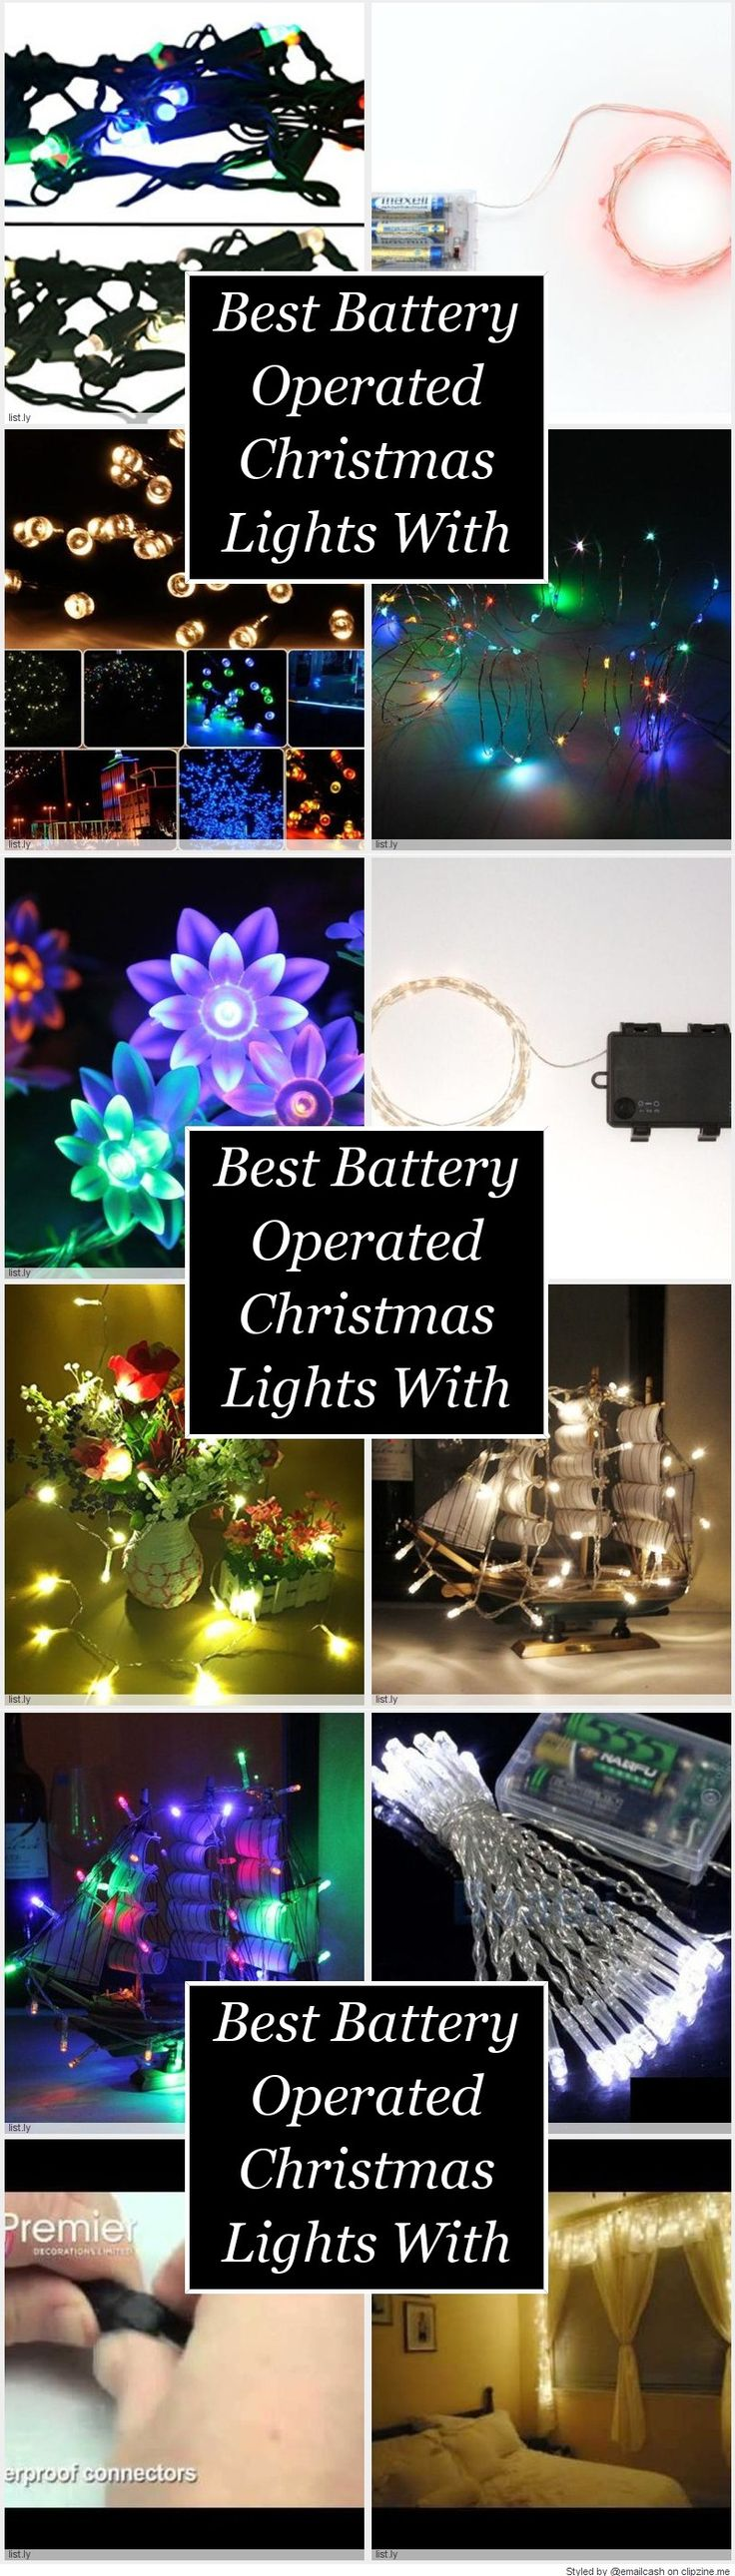 Best Battery Operated Christmas Lights With Timer - Battery operated Christmas…